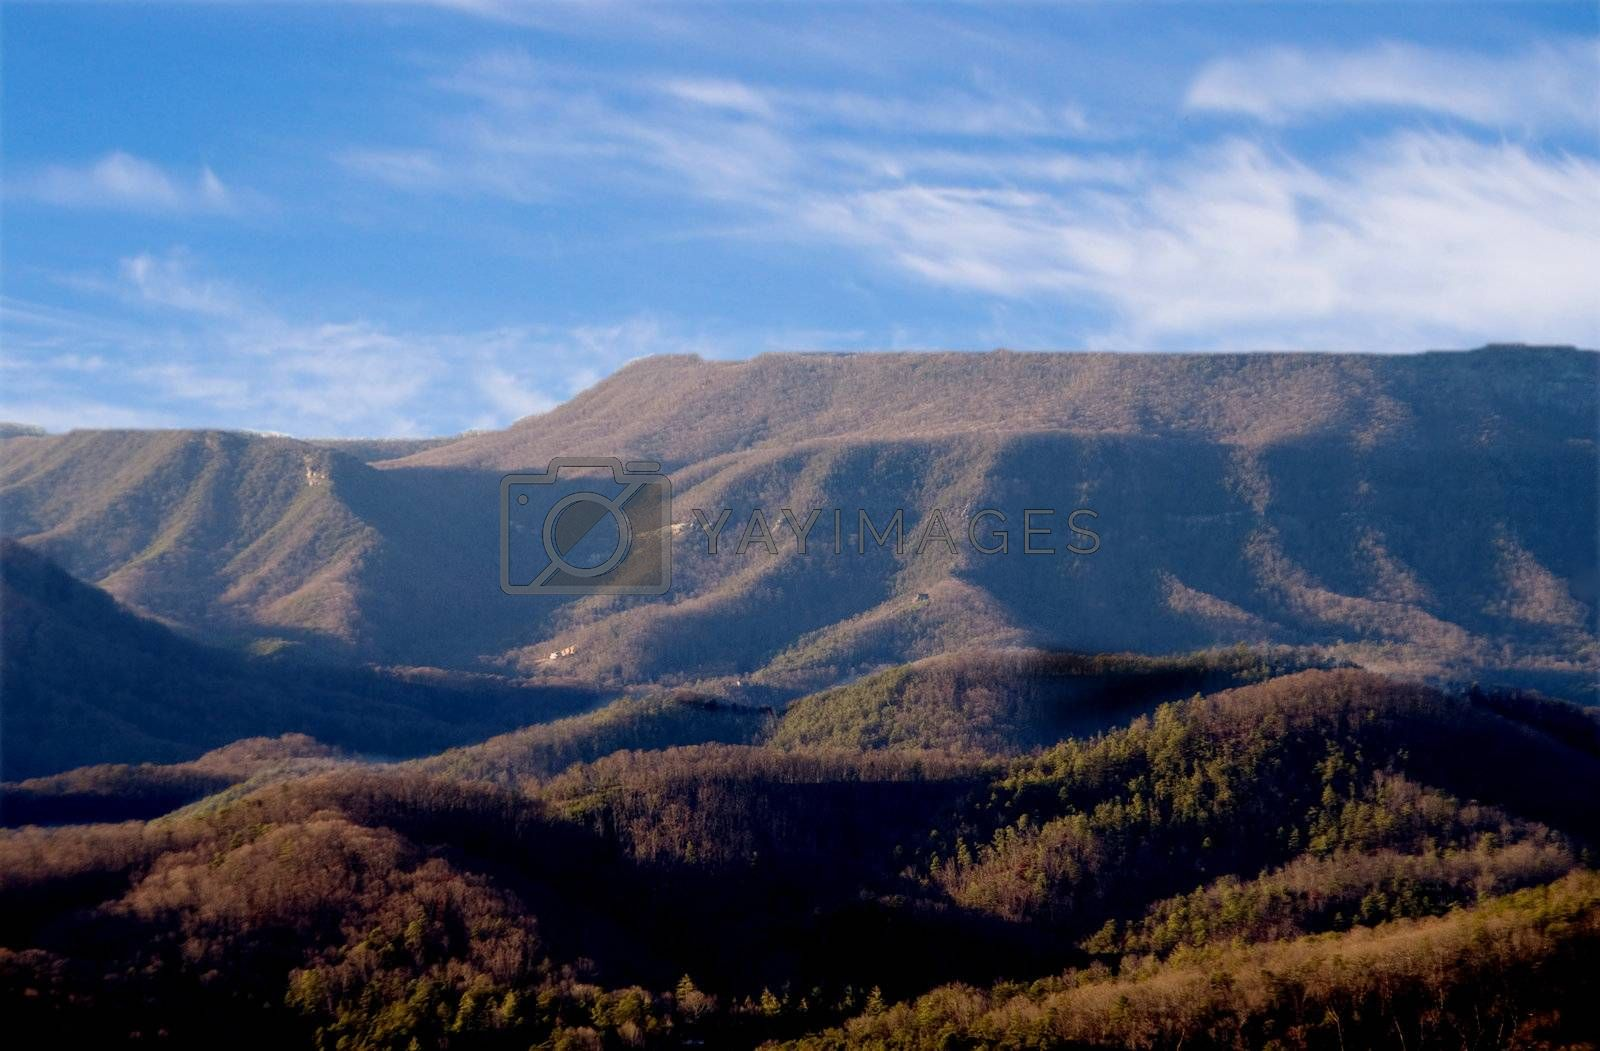 Tha Appalachian Mountains in the eastern United States